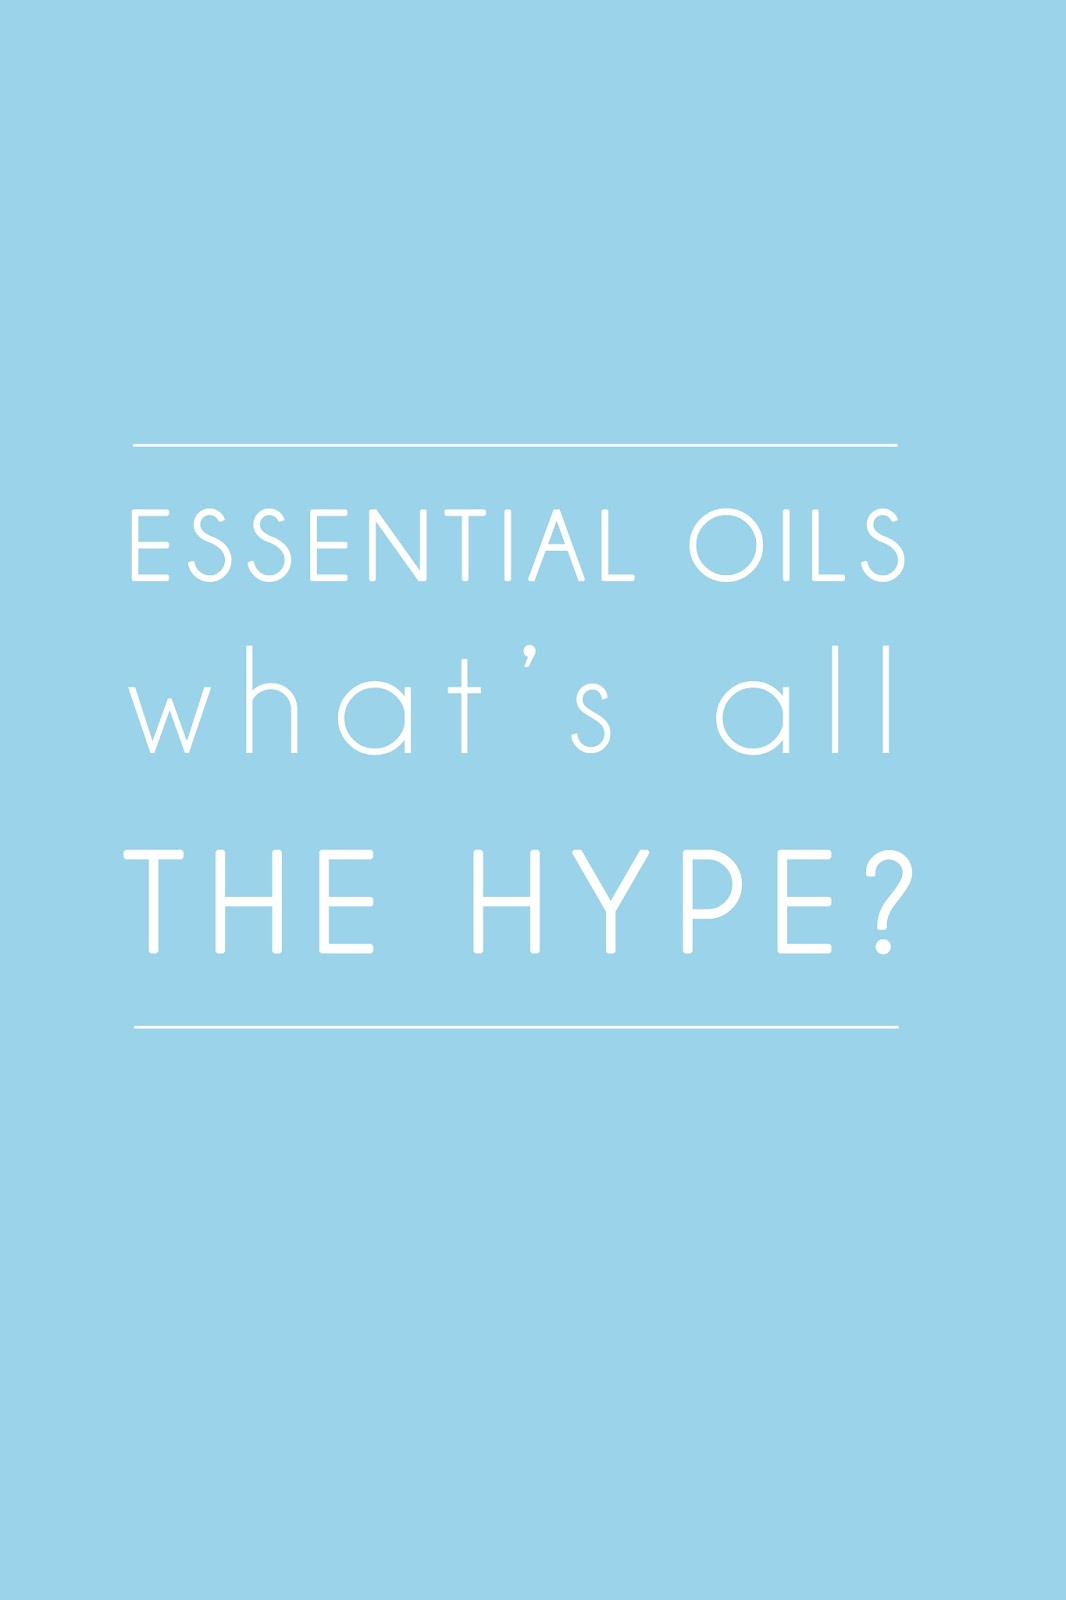 Essential Oils: What's all the Hype? www.beaucience.co.uk